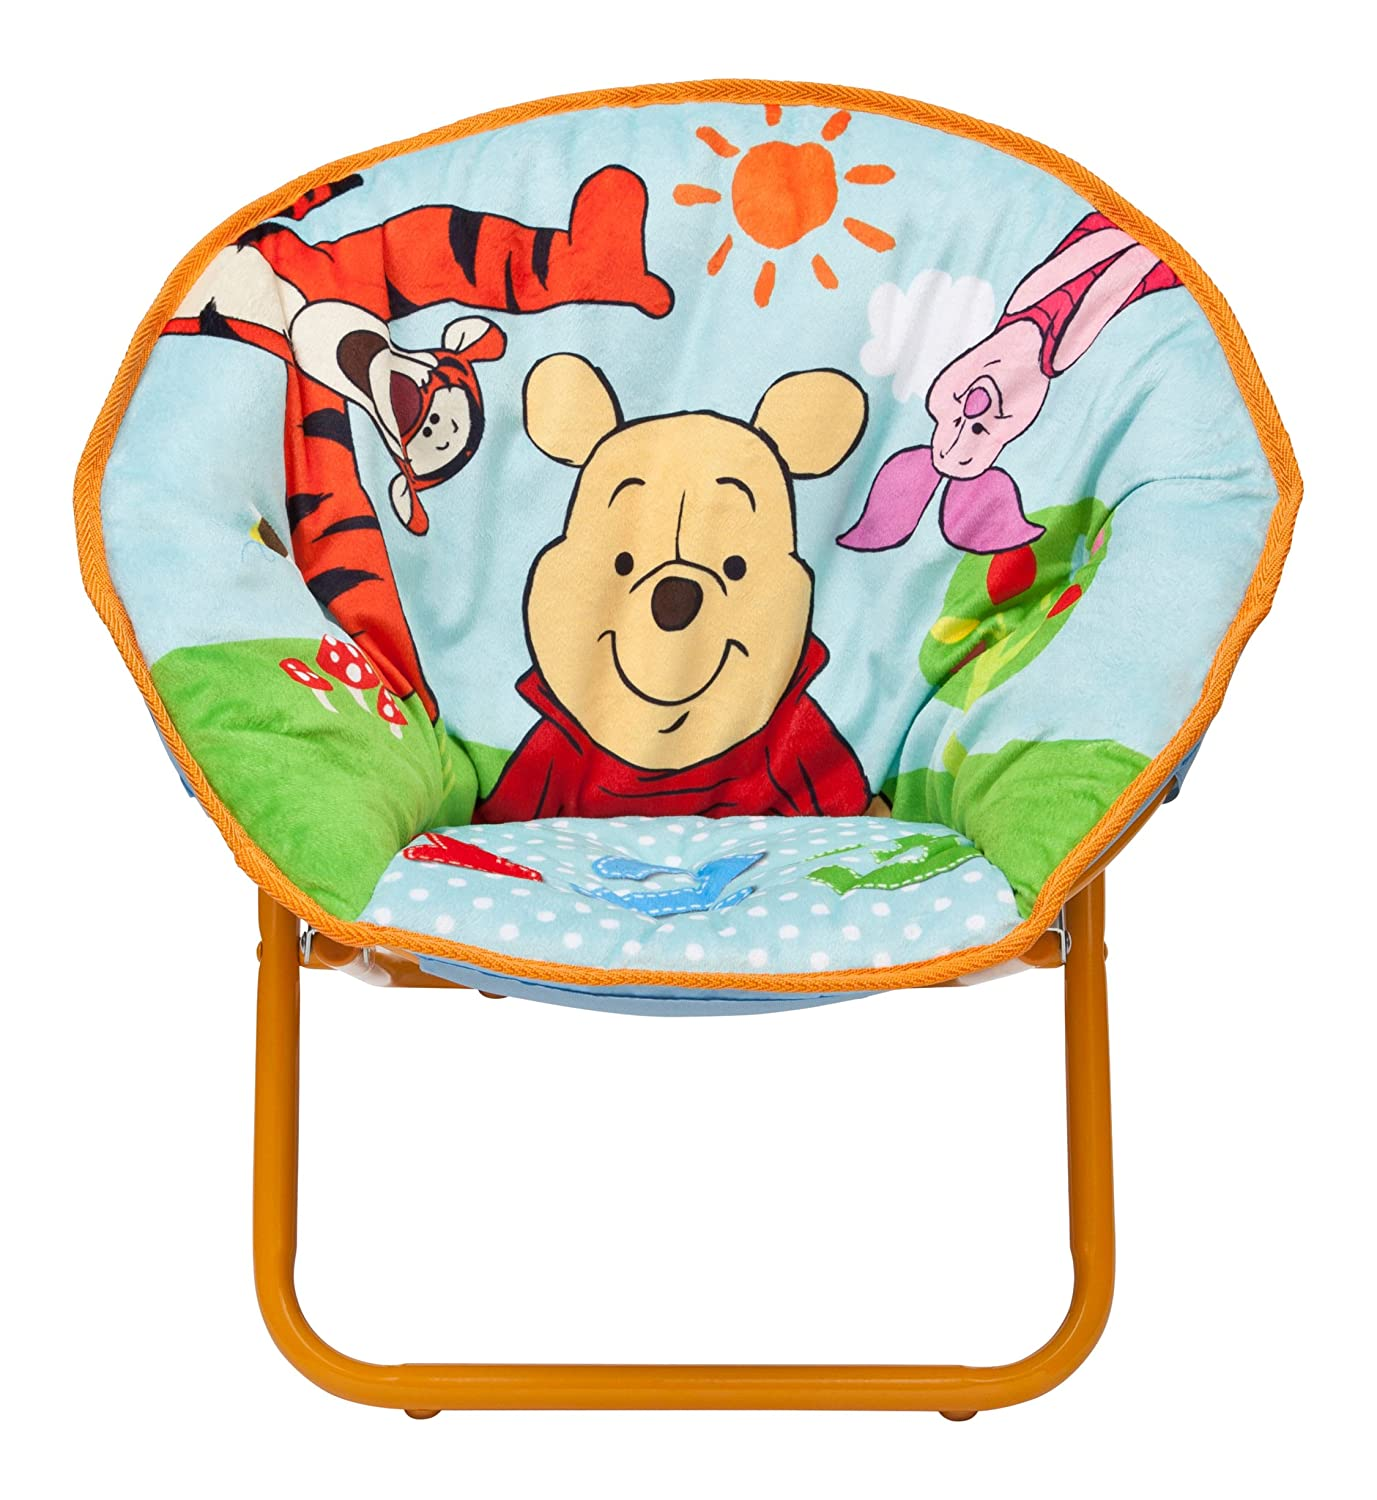 Disney Winnie the Pooh Childrens Saucer Chair